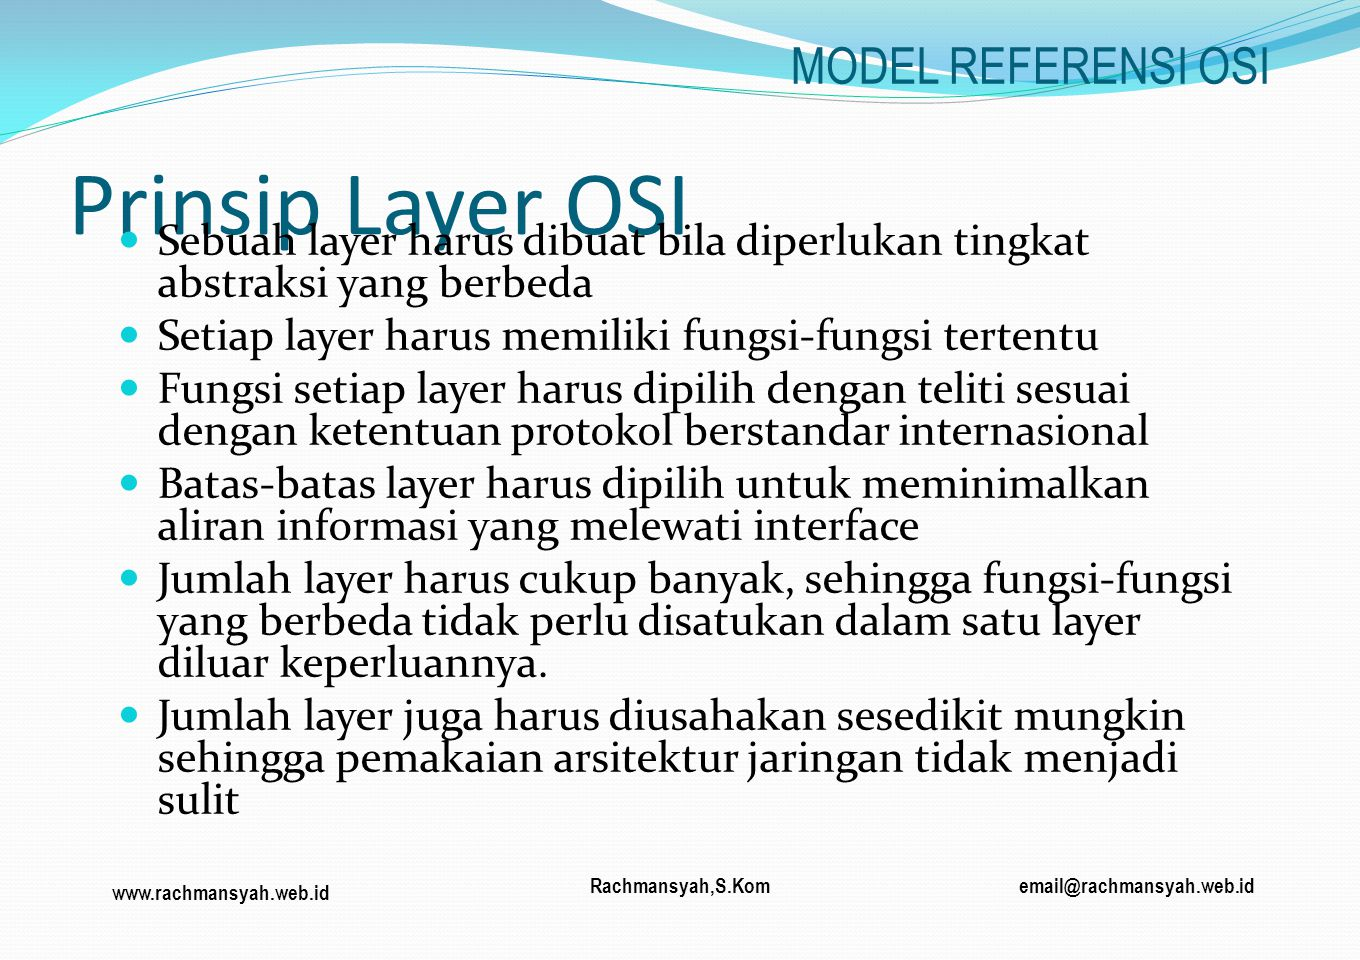 Prinsip Layer OSI MODEL REFERENSI OSI